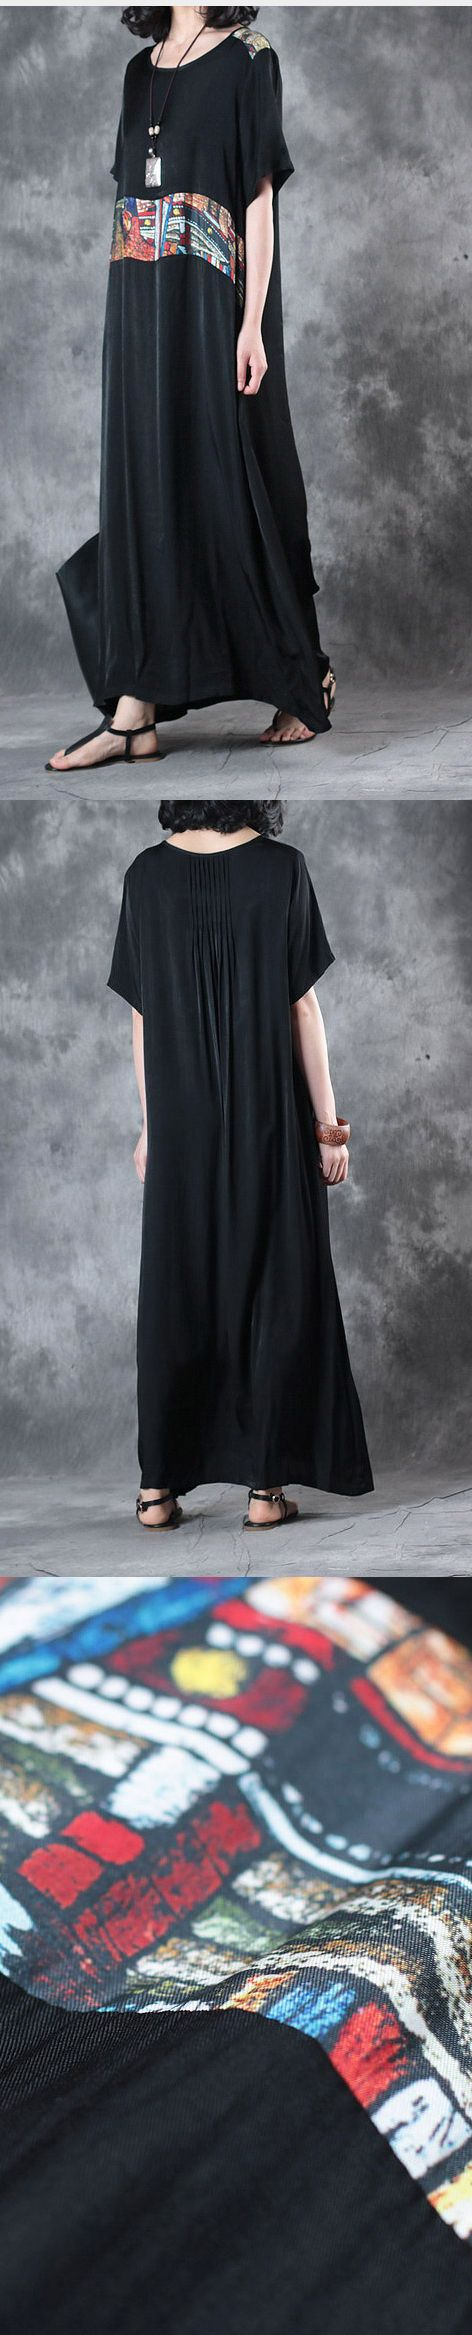 summer black baggy silk sundress plus size dresses short sleeve maxi dress